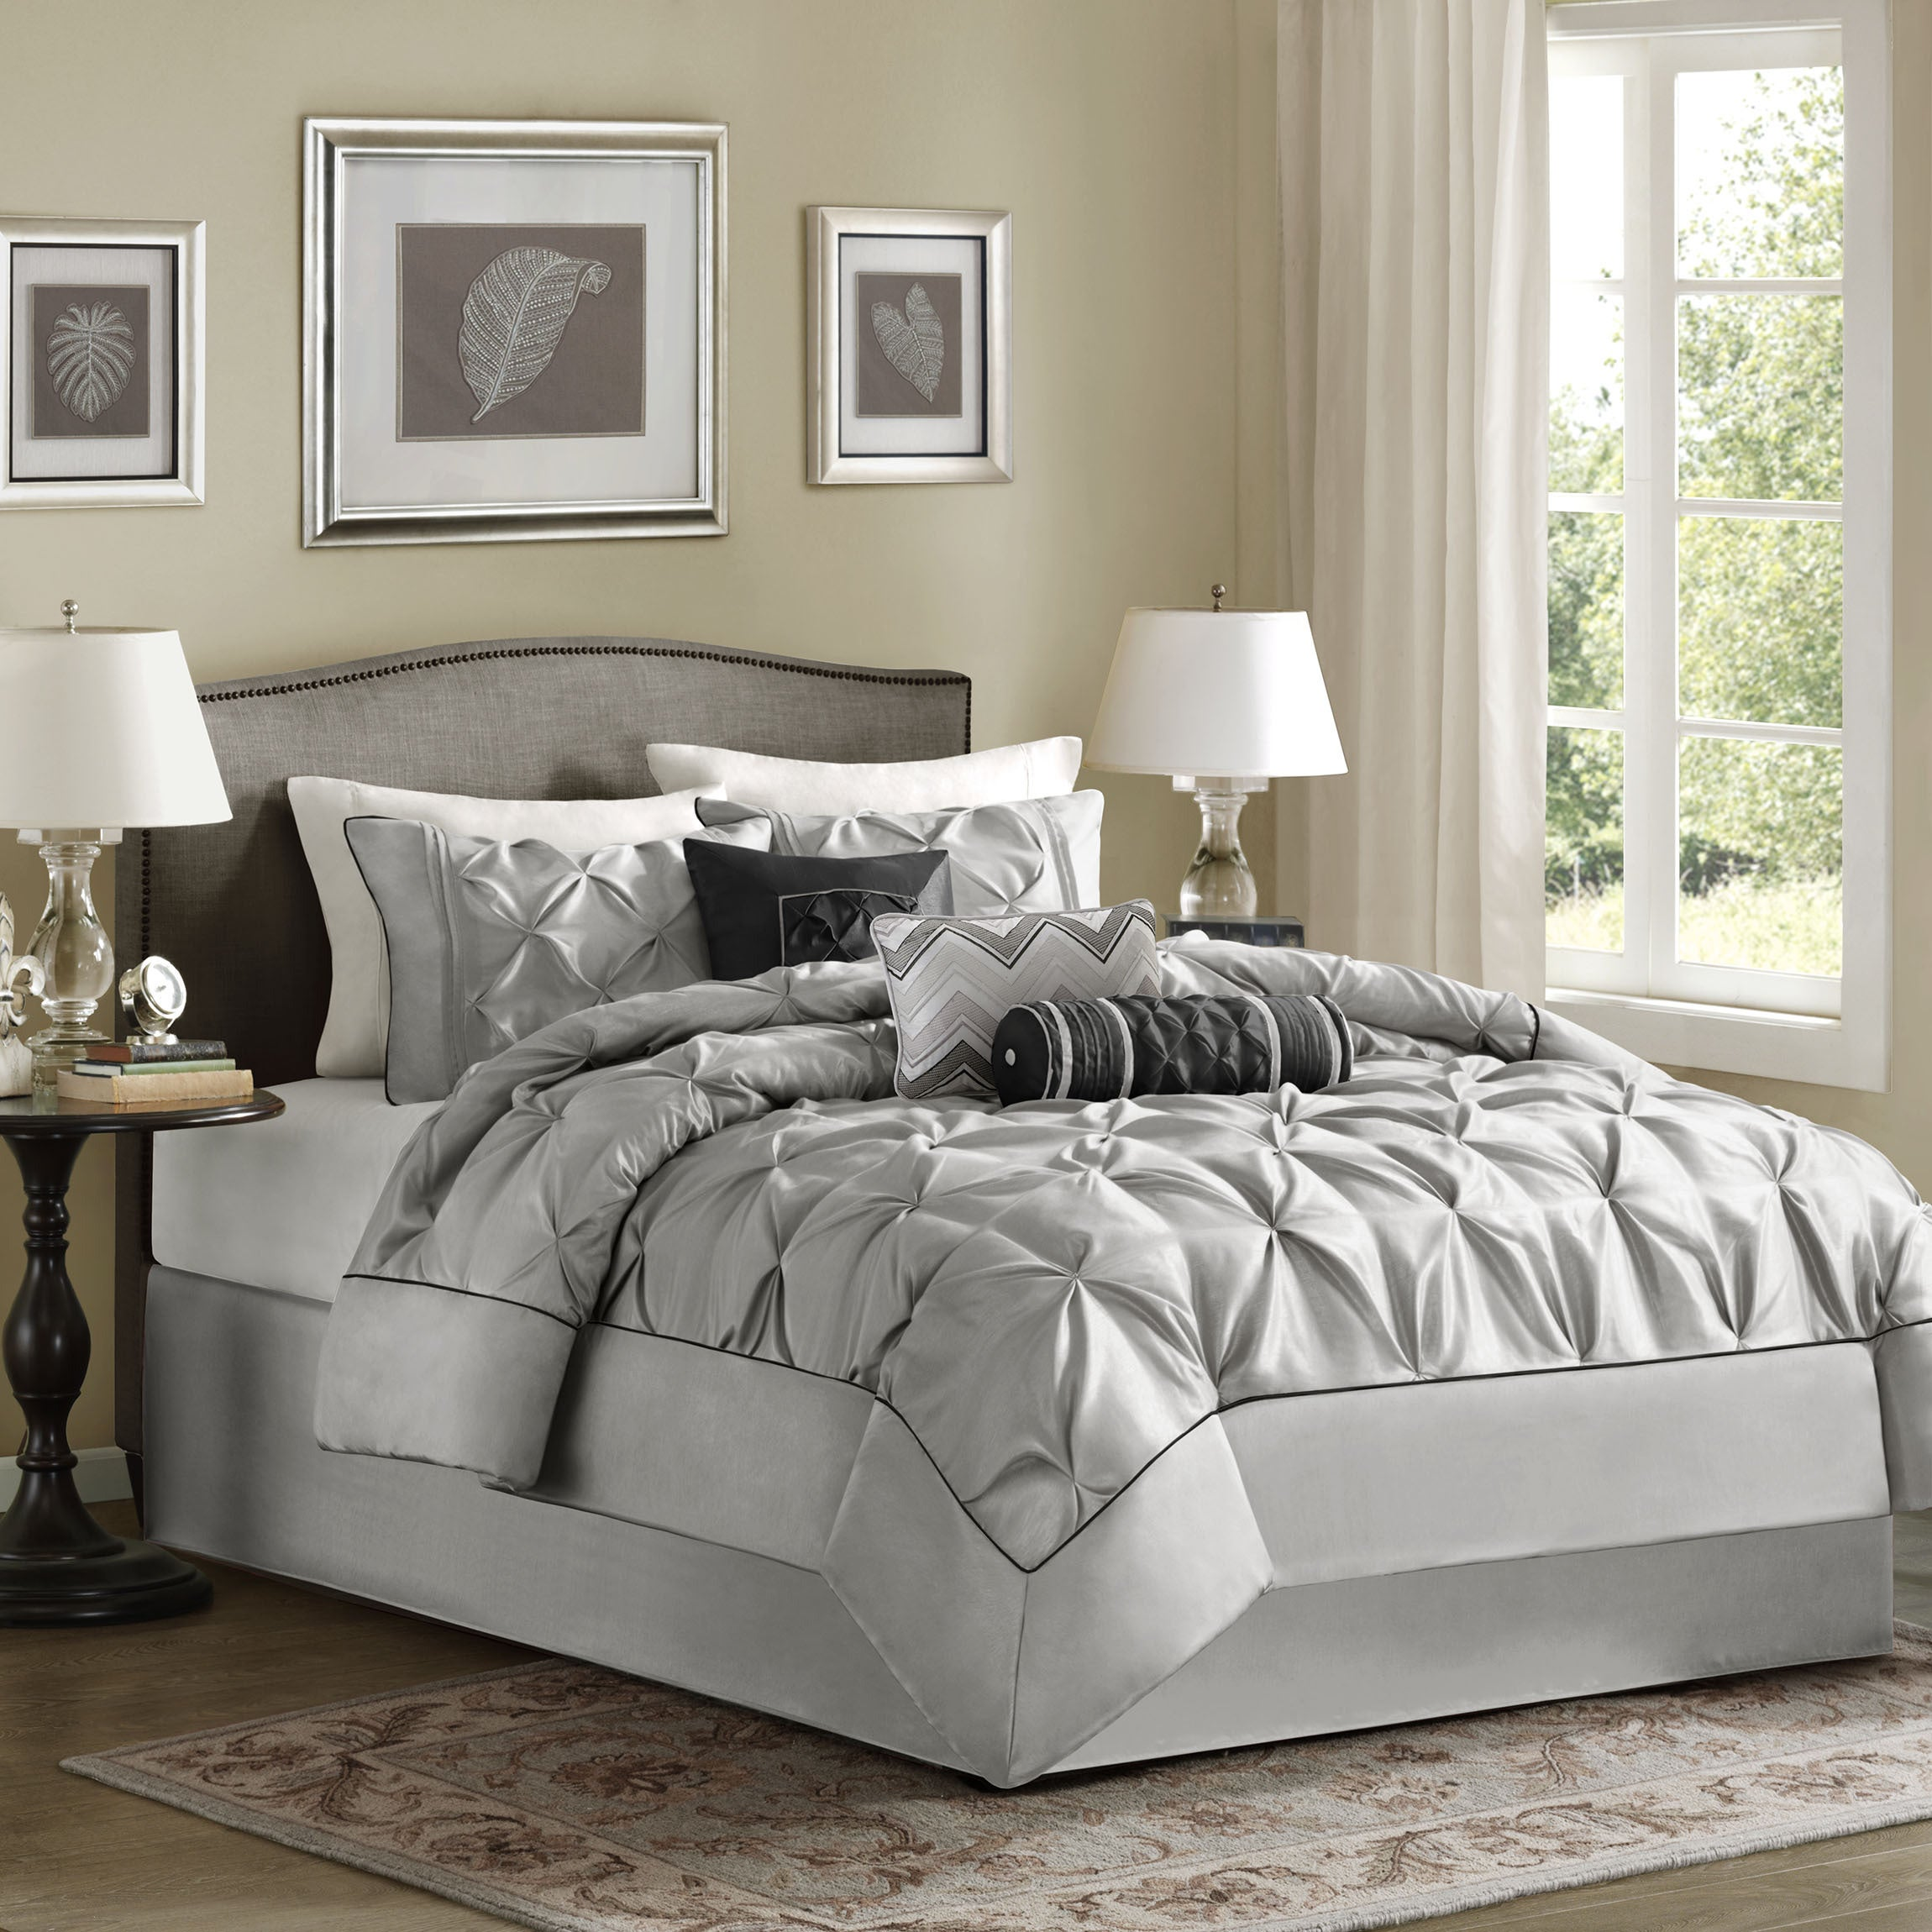 rpisite dark bedspread bed com comforter sets comforters furniture grey charcoal light gray